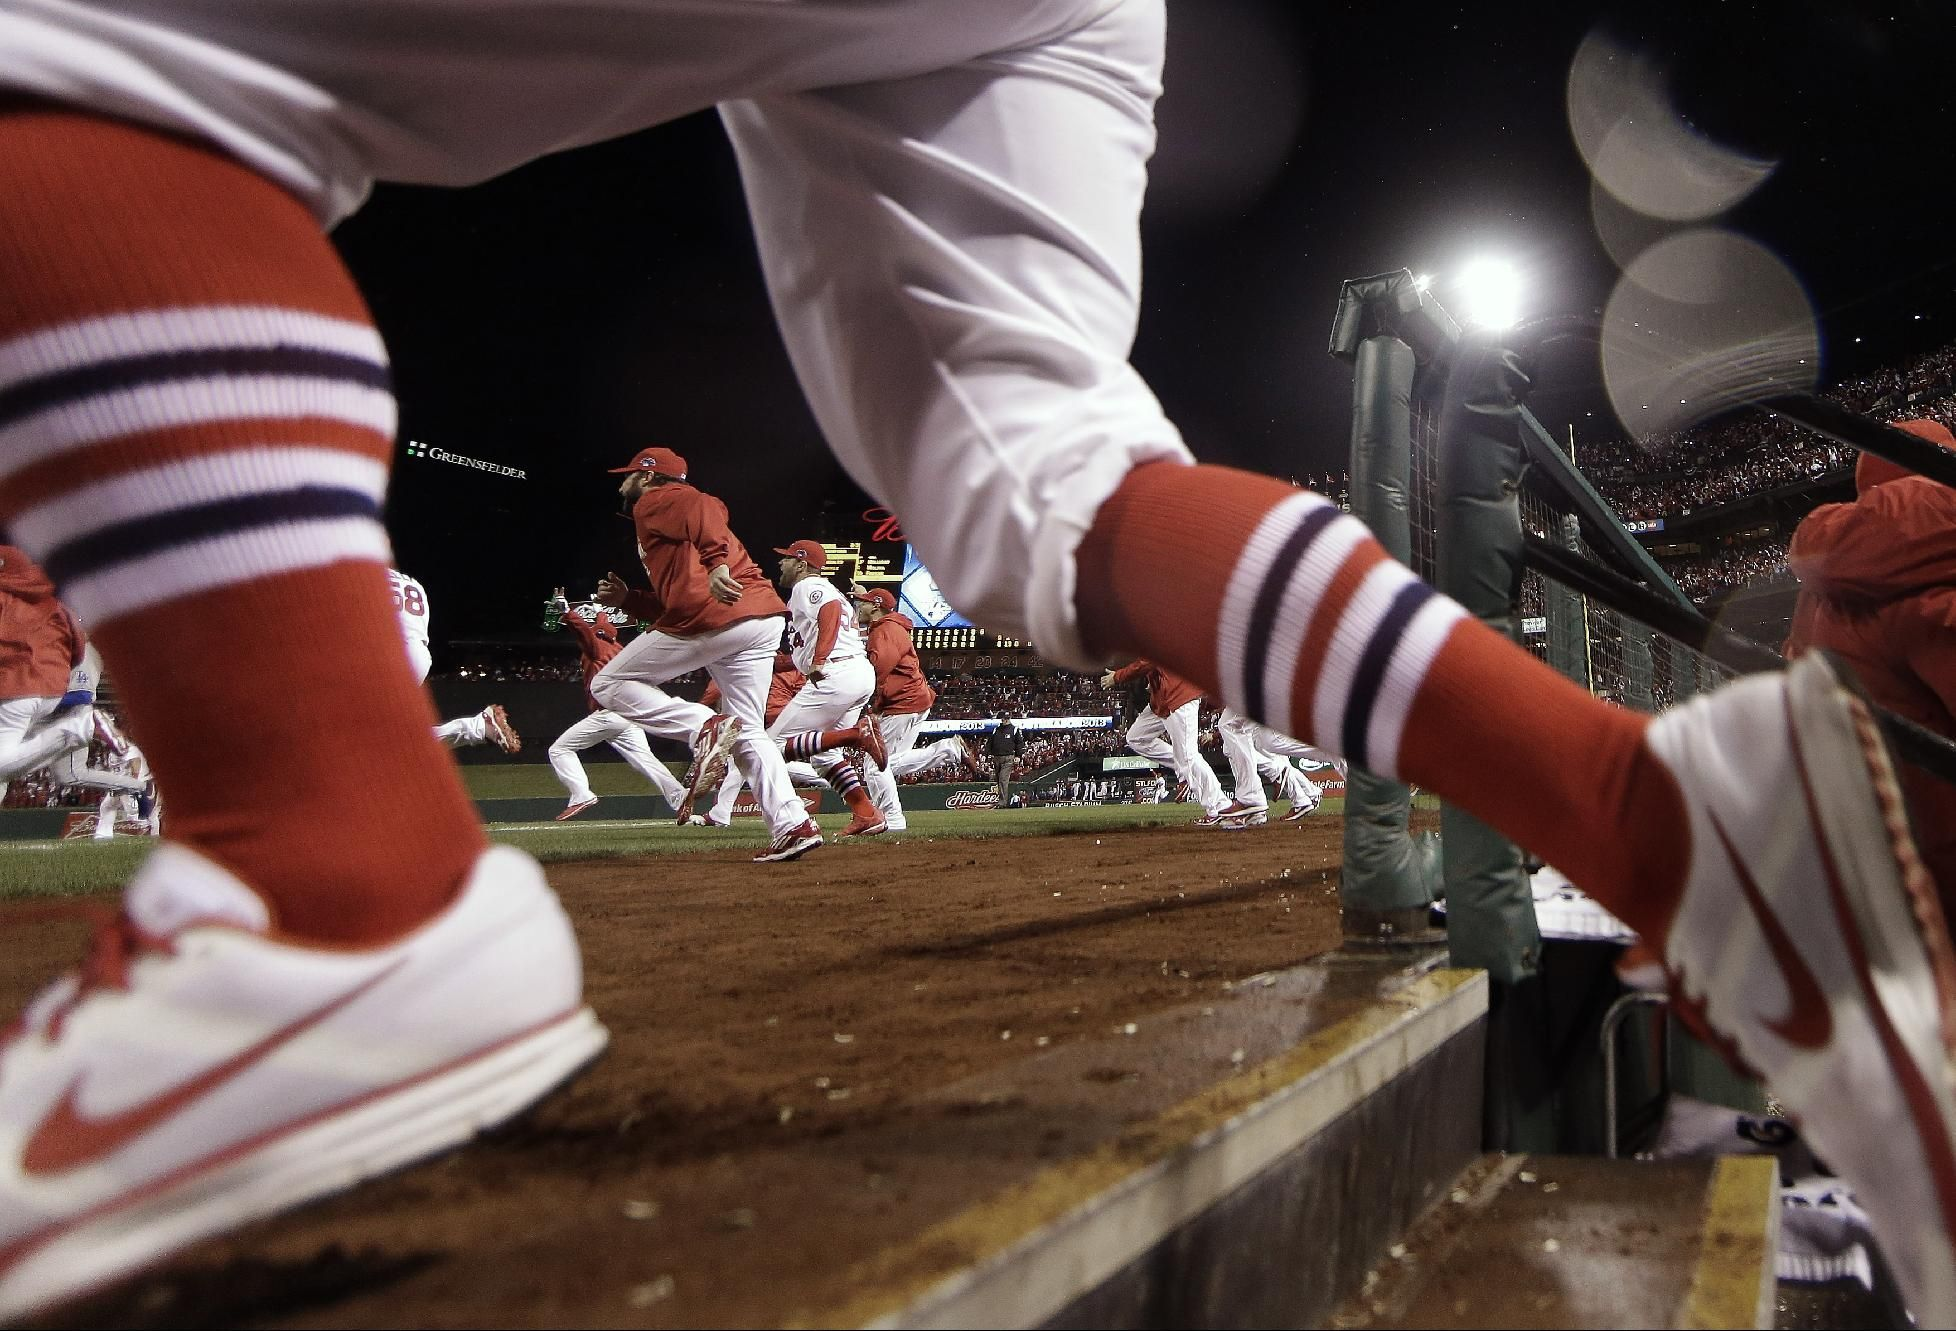 The St. Louis Cardinals run out of the dugout after Game 6